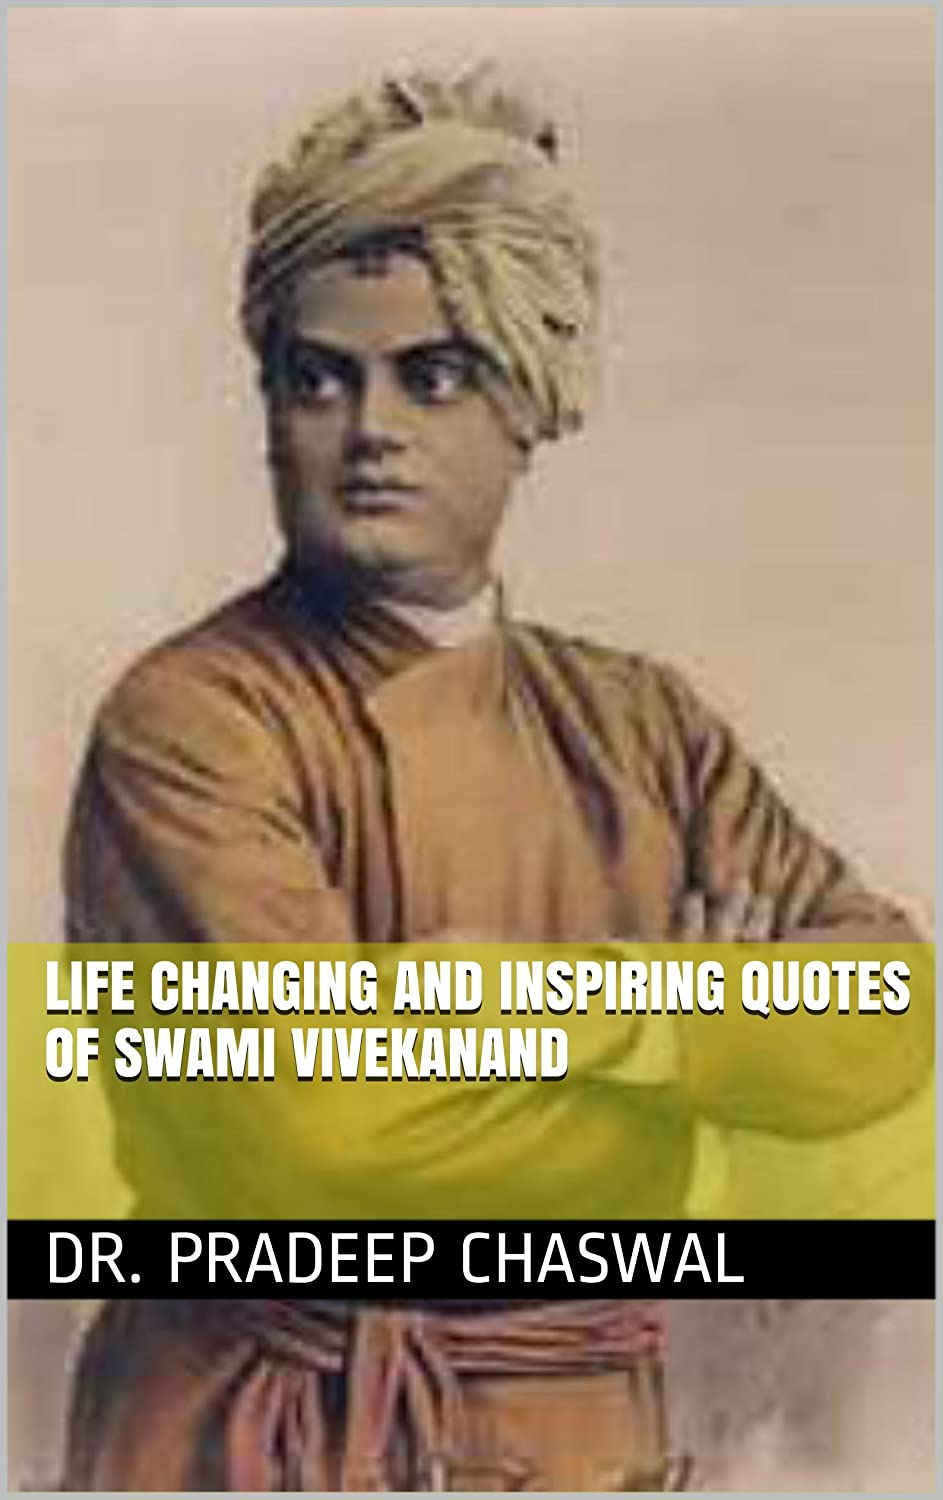 Life Changing and Inspiring Quotes of Swami Vivekanand